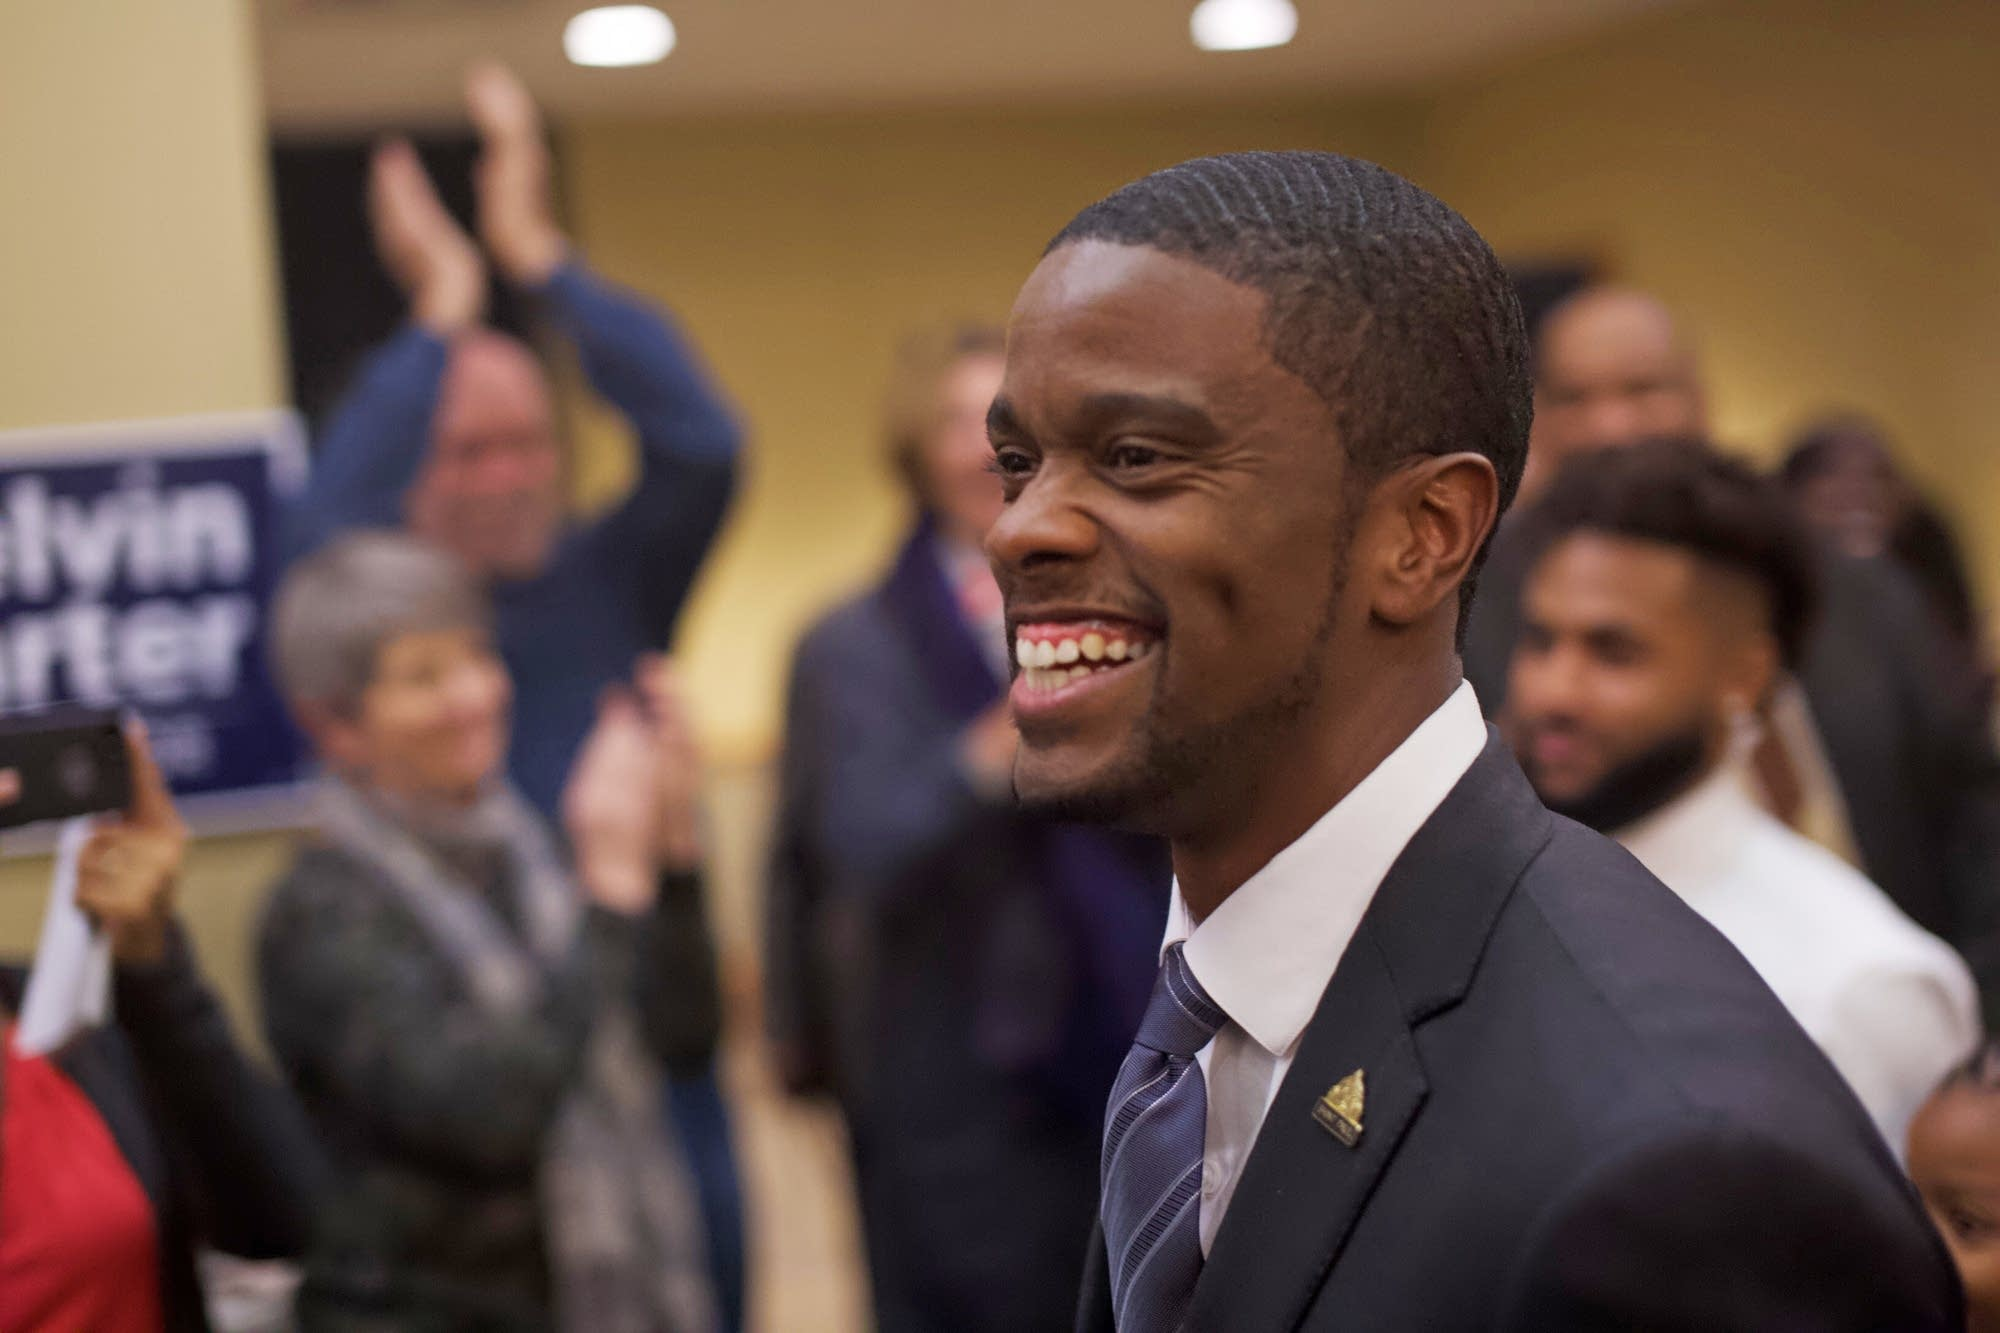 Carter Elected St. Paul's First African American Mayor